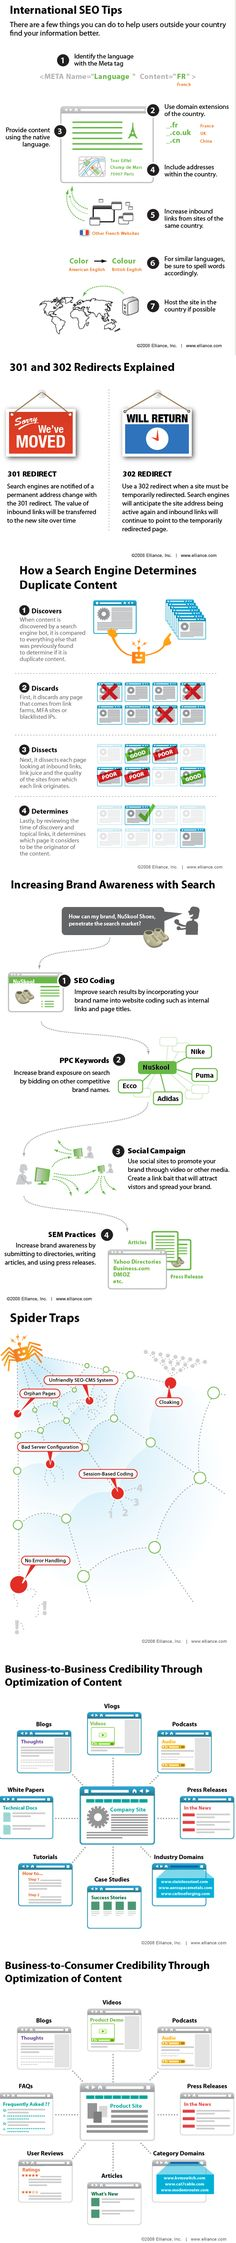 Infographic -SEO Explained 5 - International SEO Tips